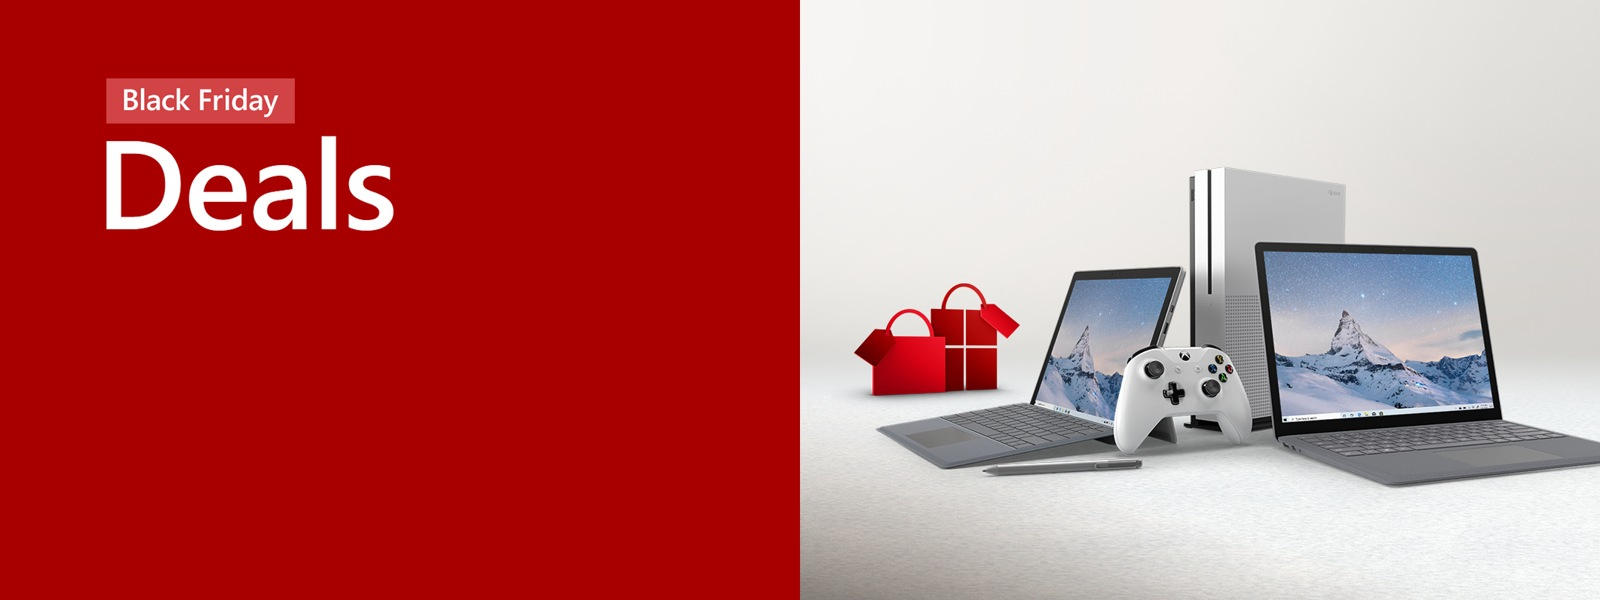 Surface and Xbox products